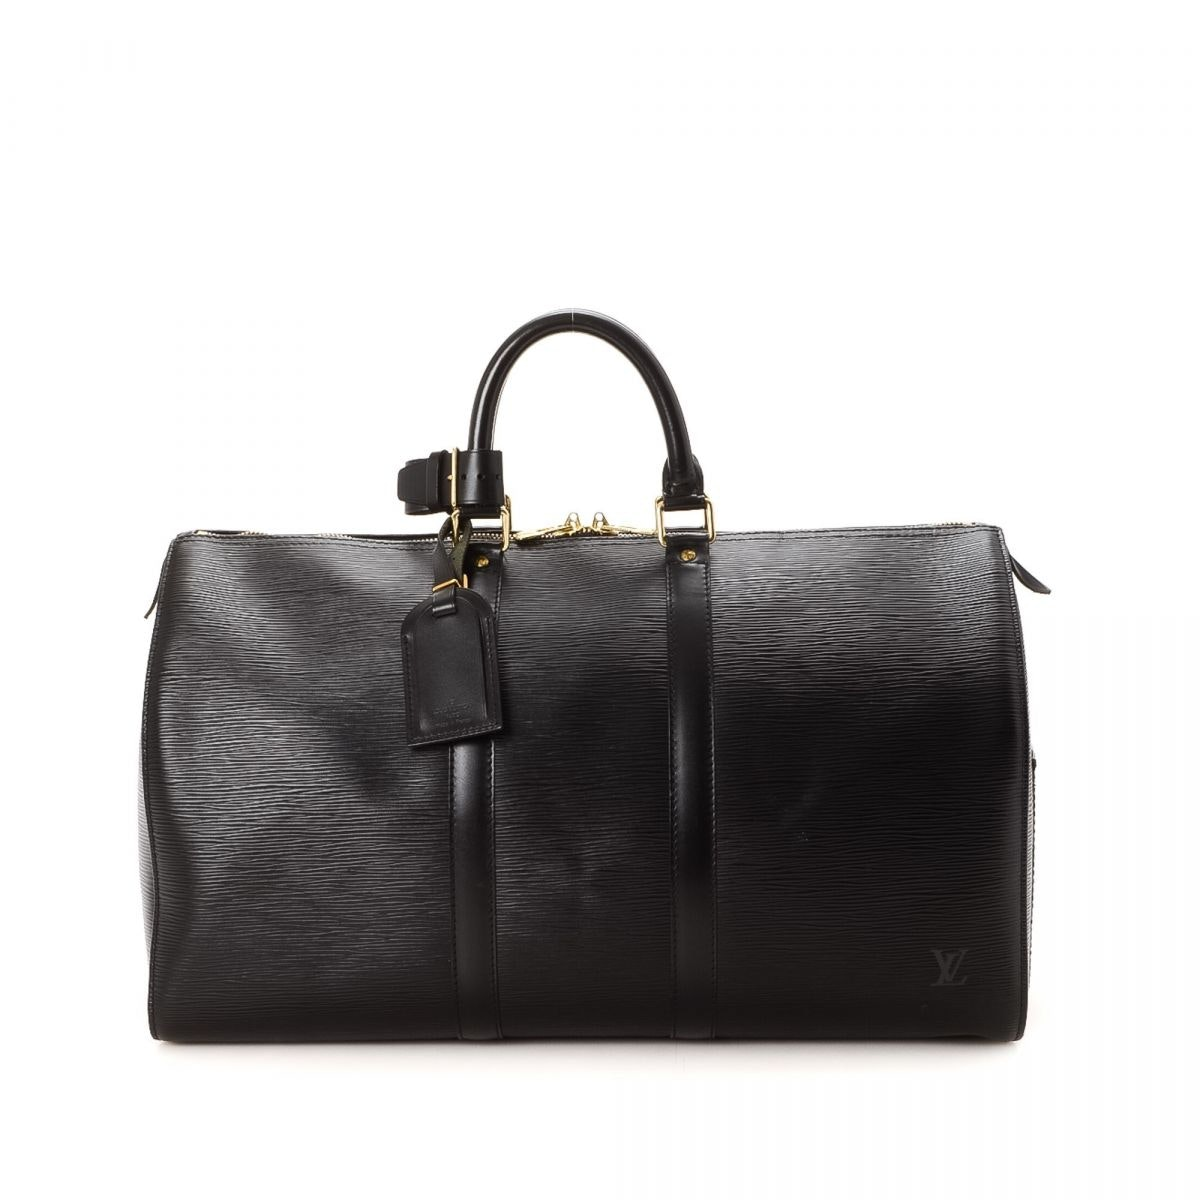 Louis Vuitton Keepall Epi (With Accessories) 45 Black